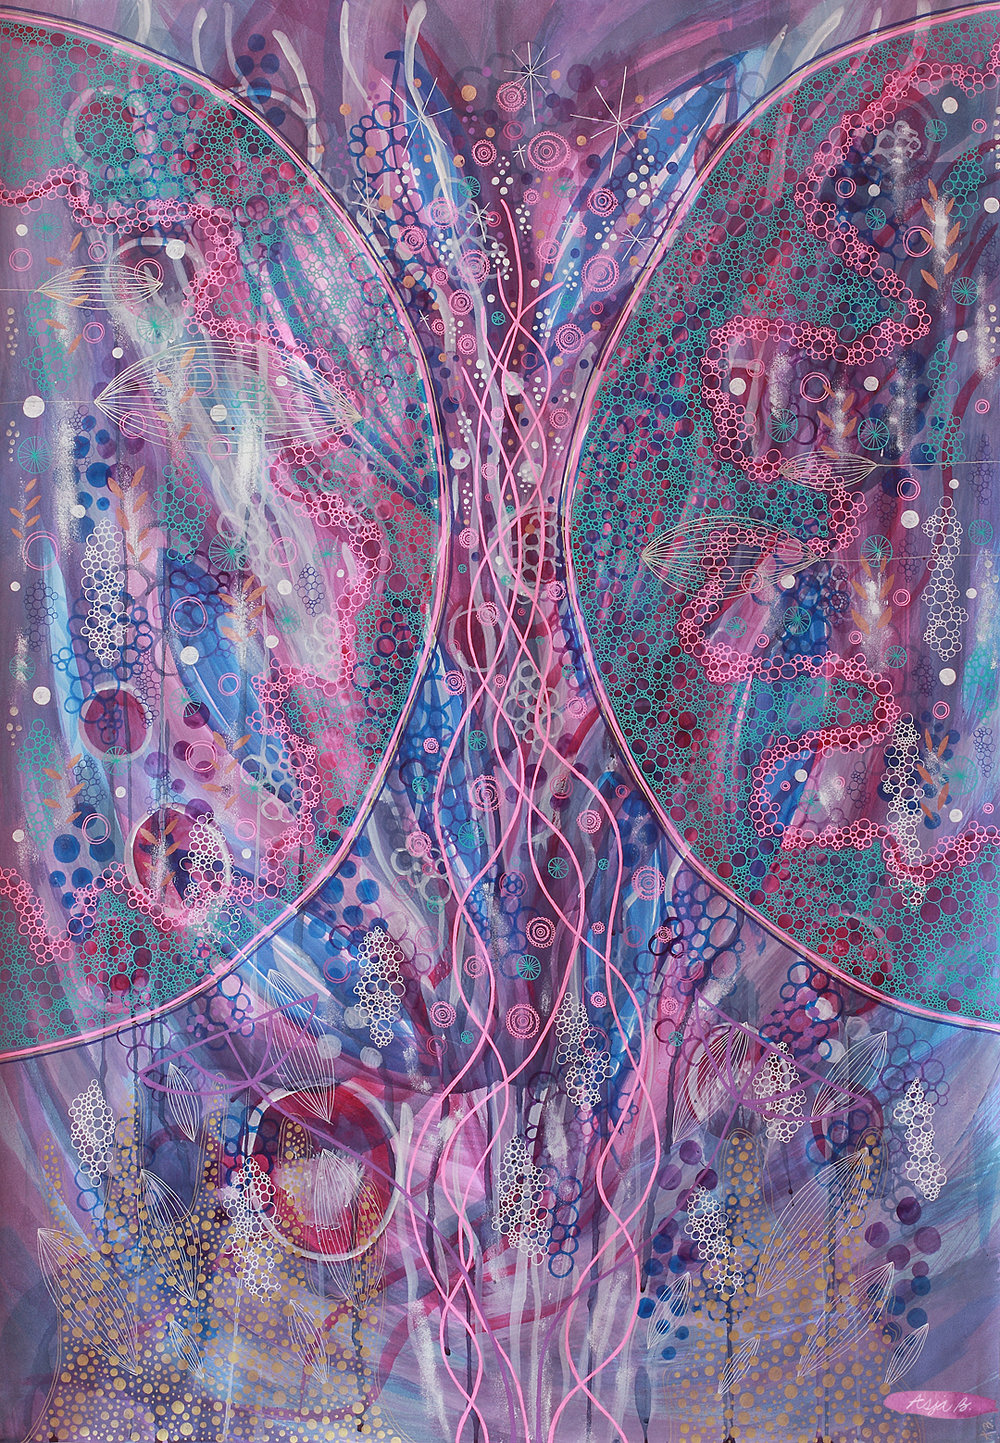 Desire, ink and gelly rolls on 70x100cm paper.